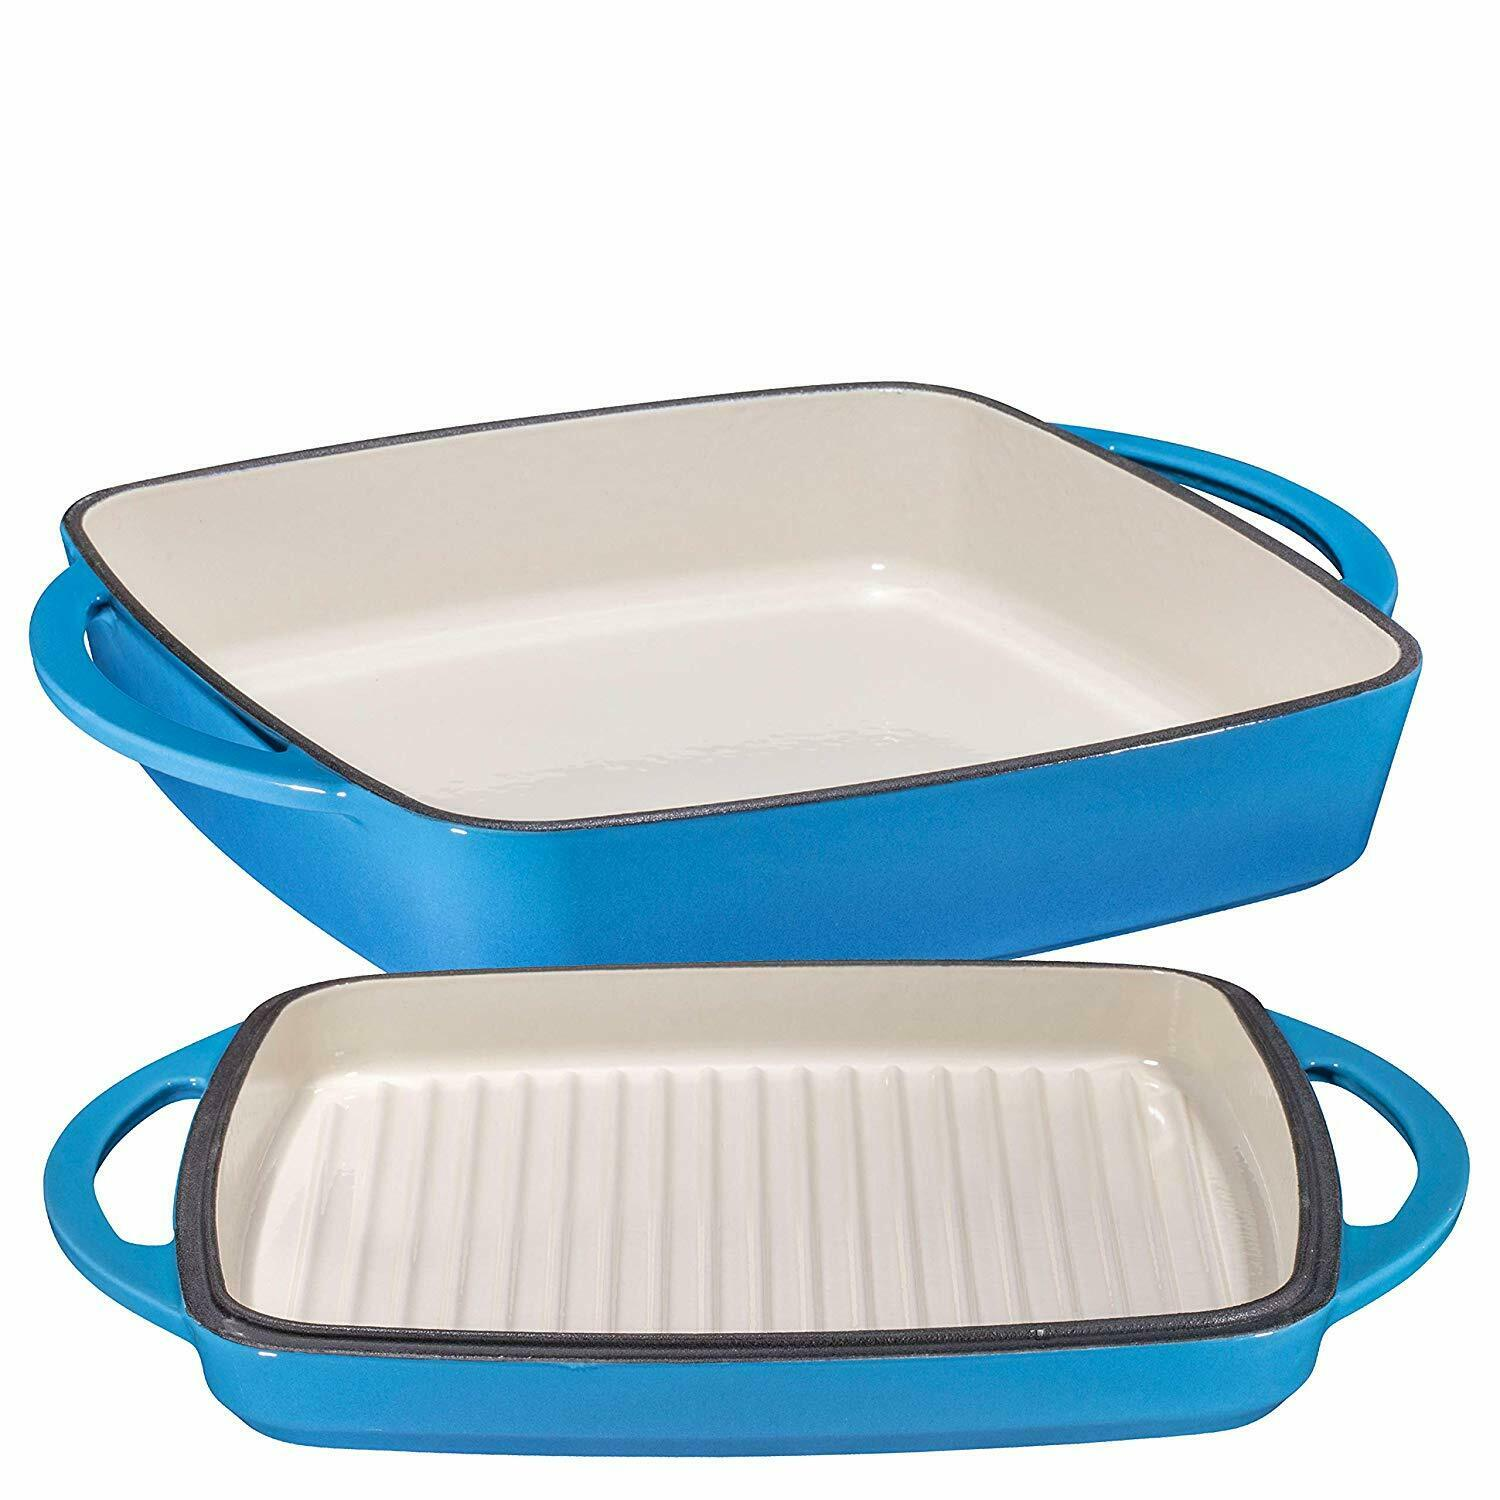 bluee Enameled Cast Iron Square Casserole Baker With Griddle Lid